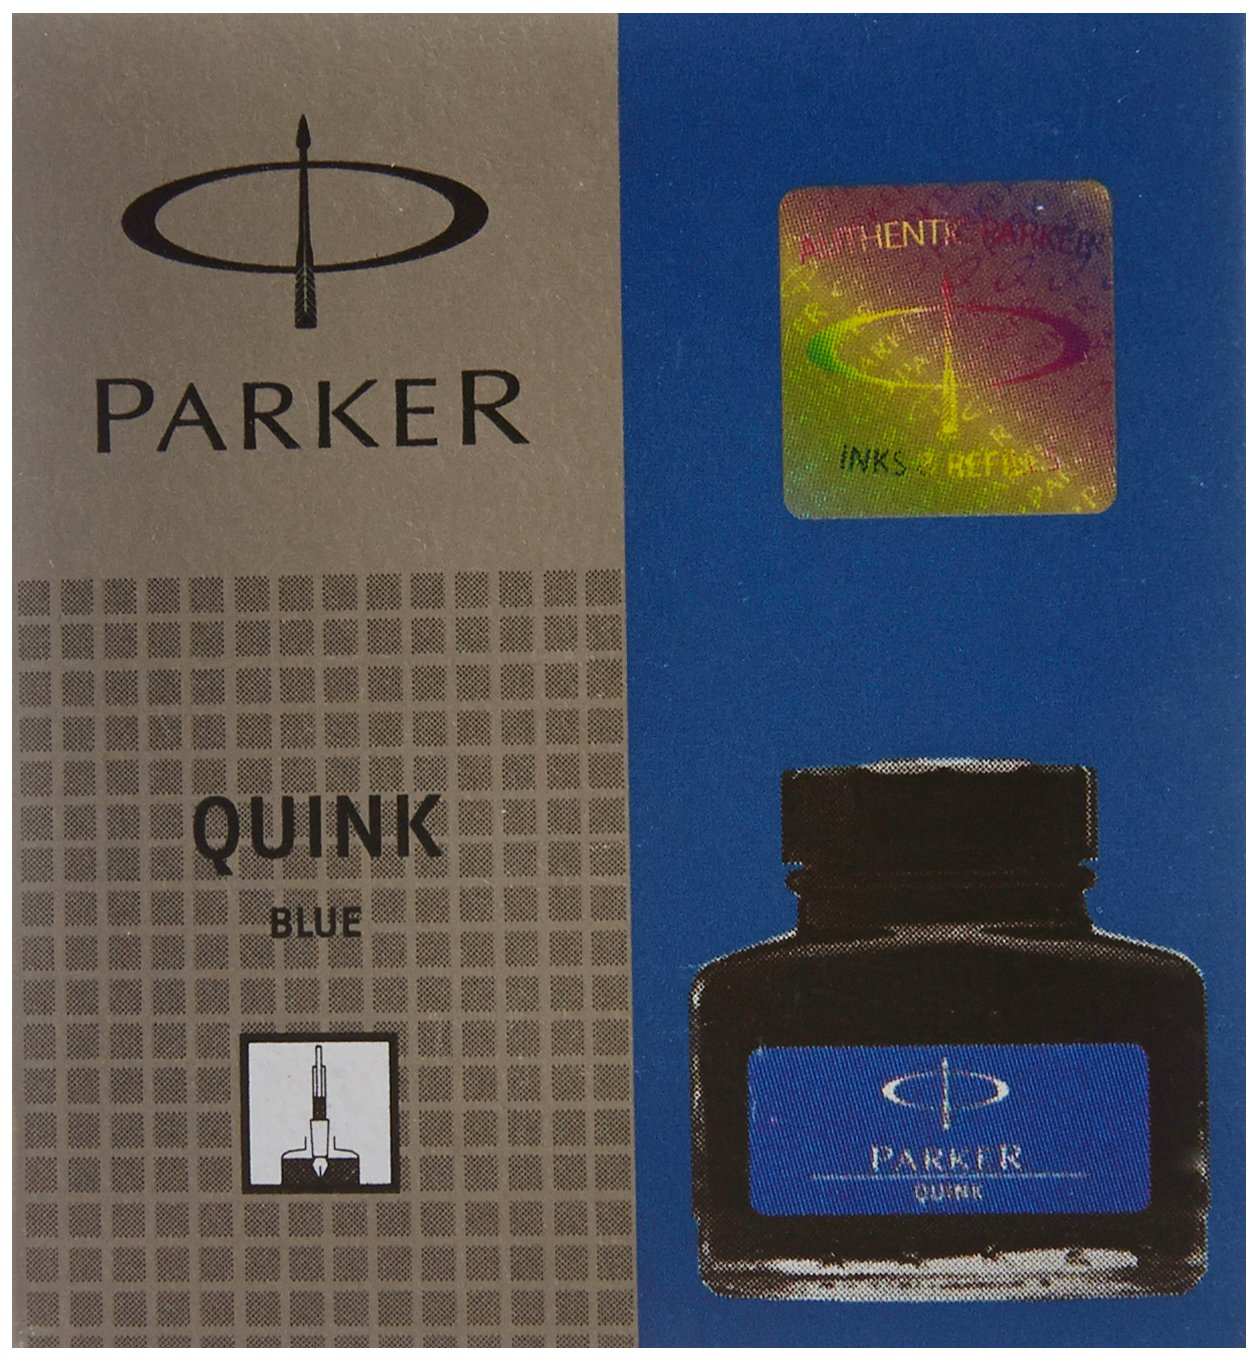 Parker Quink Ink Bottle, Blue